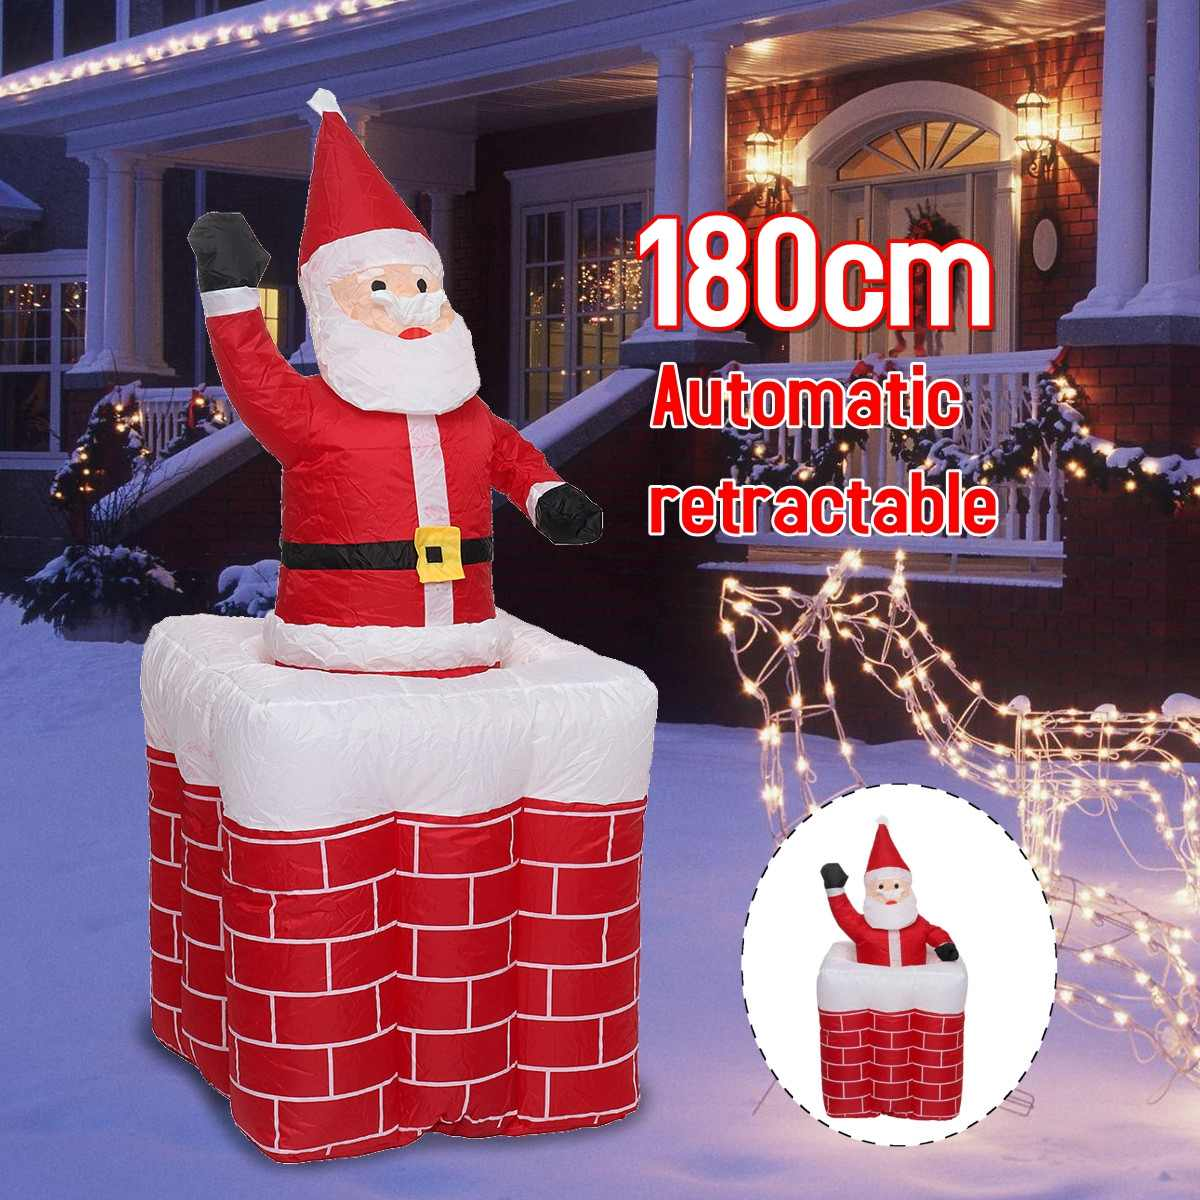 1.8 M Christmas home gard decoration lifting chimney inflatable Santa Claus light ornaments Christmas decorations Toy gifts 2018 new 5m lighted climbing santa inflatable outdoor christmas 16 4ft christmas large santa decorations inflatable toy